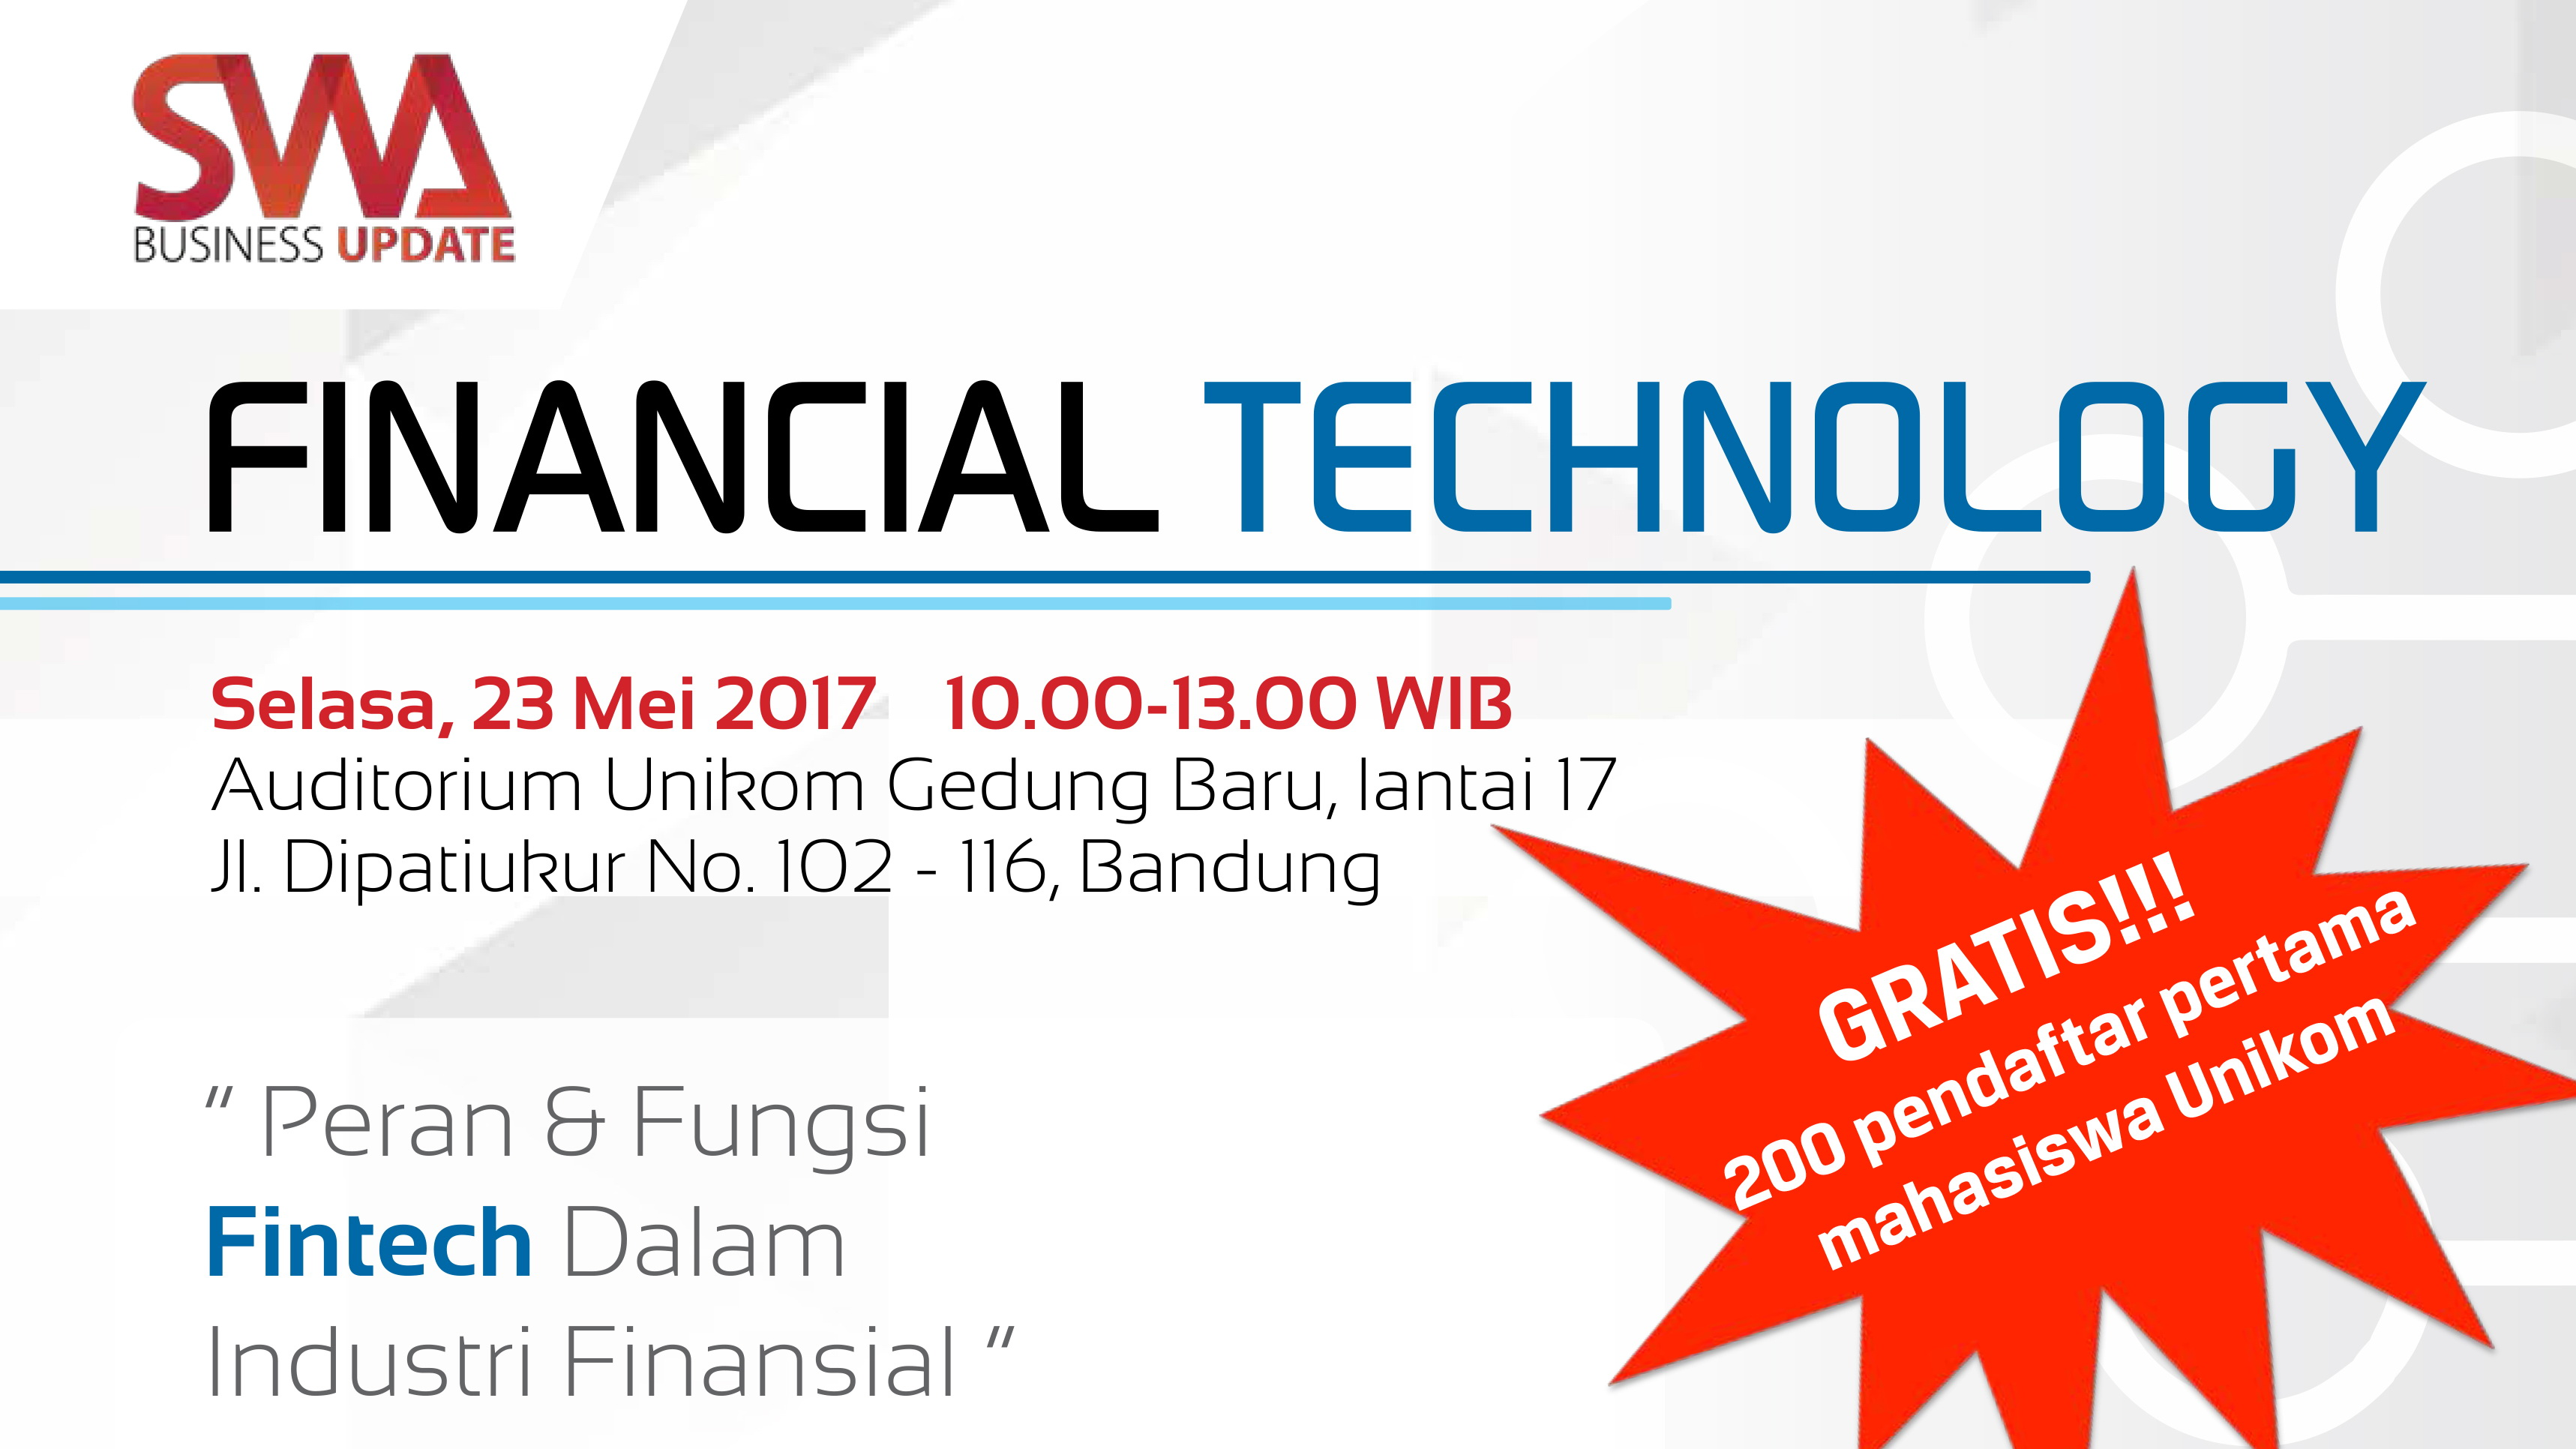 SWA BUSINESS UPDATE UNIKOM-FINANCIAL TECHNOLOGY